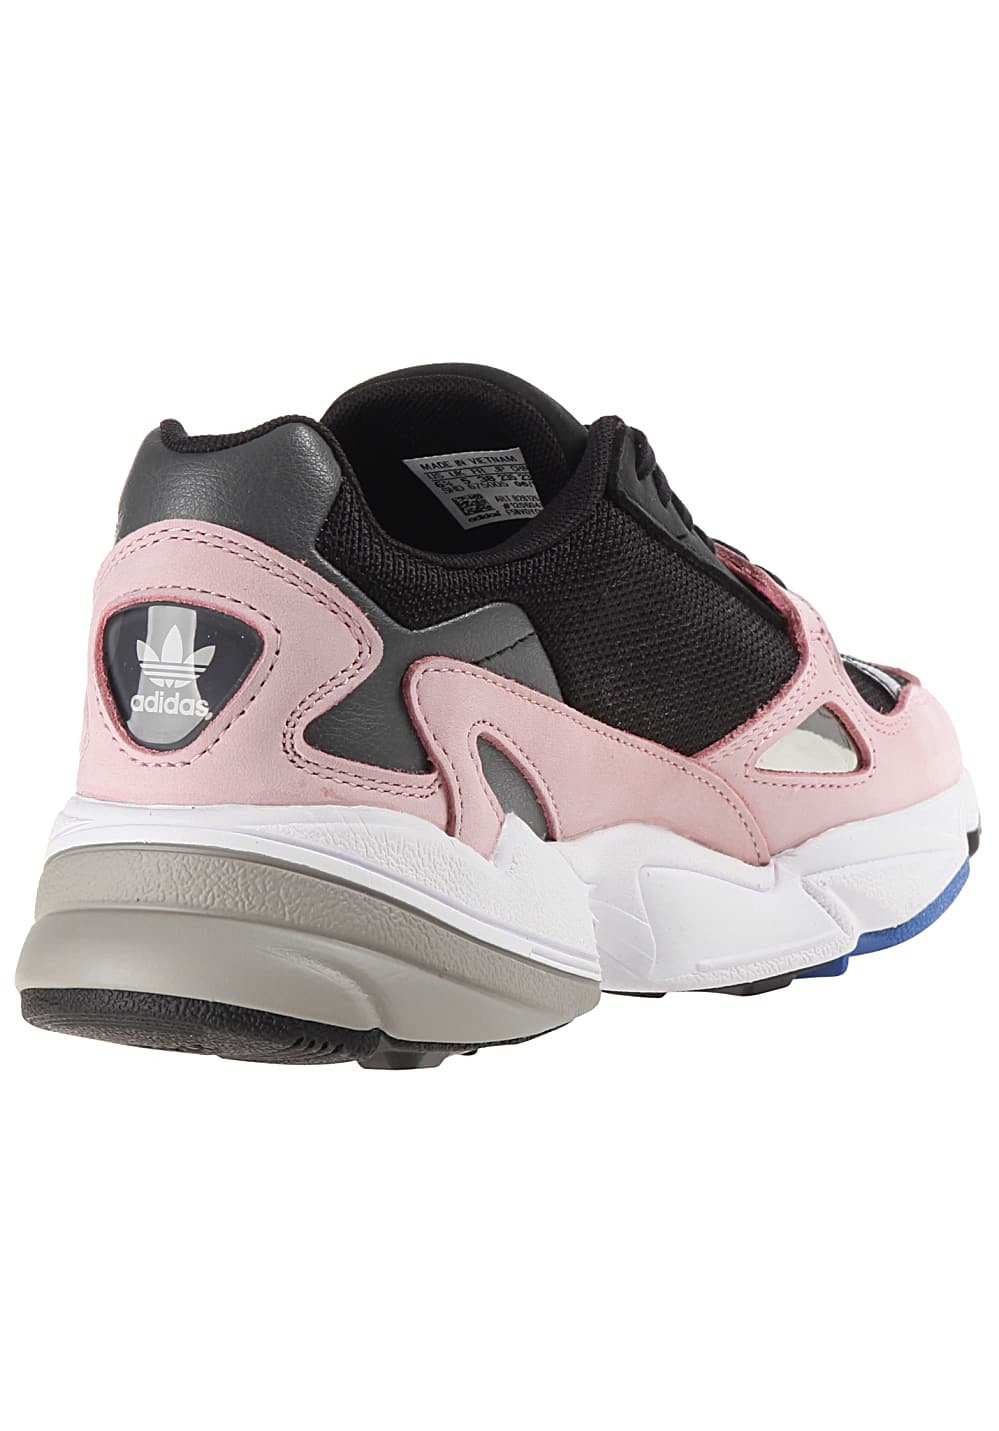 low priced 2e9ff 4a185 ADIDAS ORIGINALS Falcon - Sneakers voor Dames - Zwart - Plan